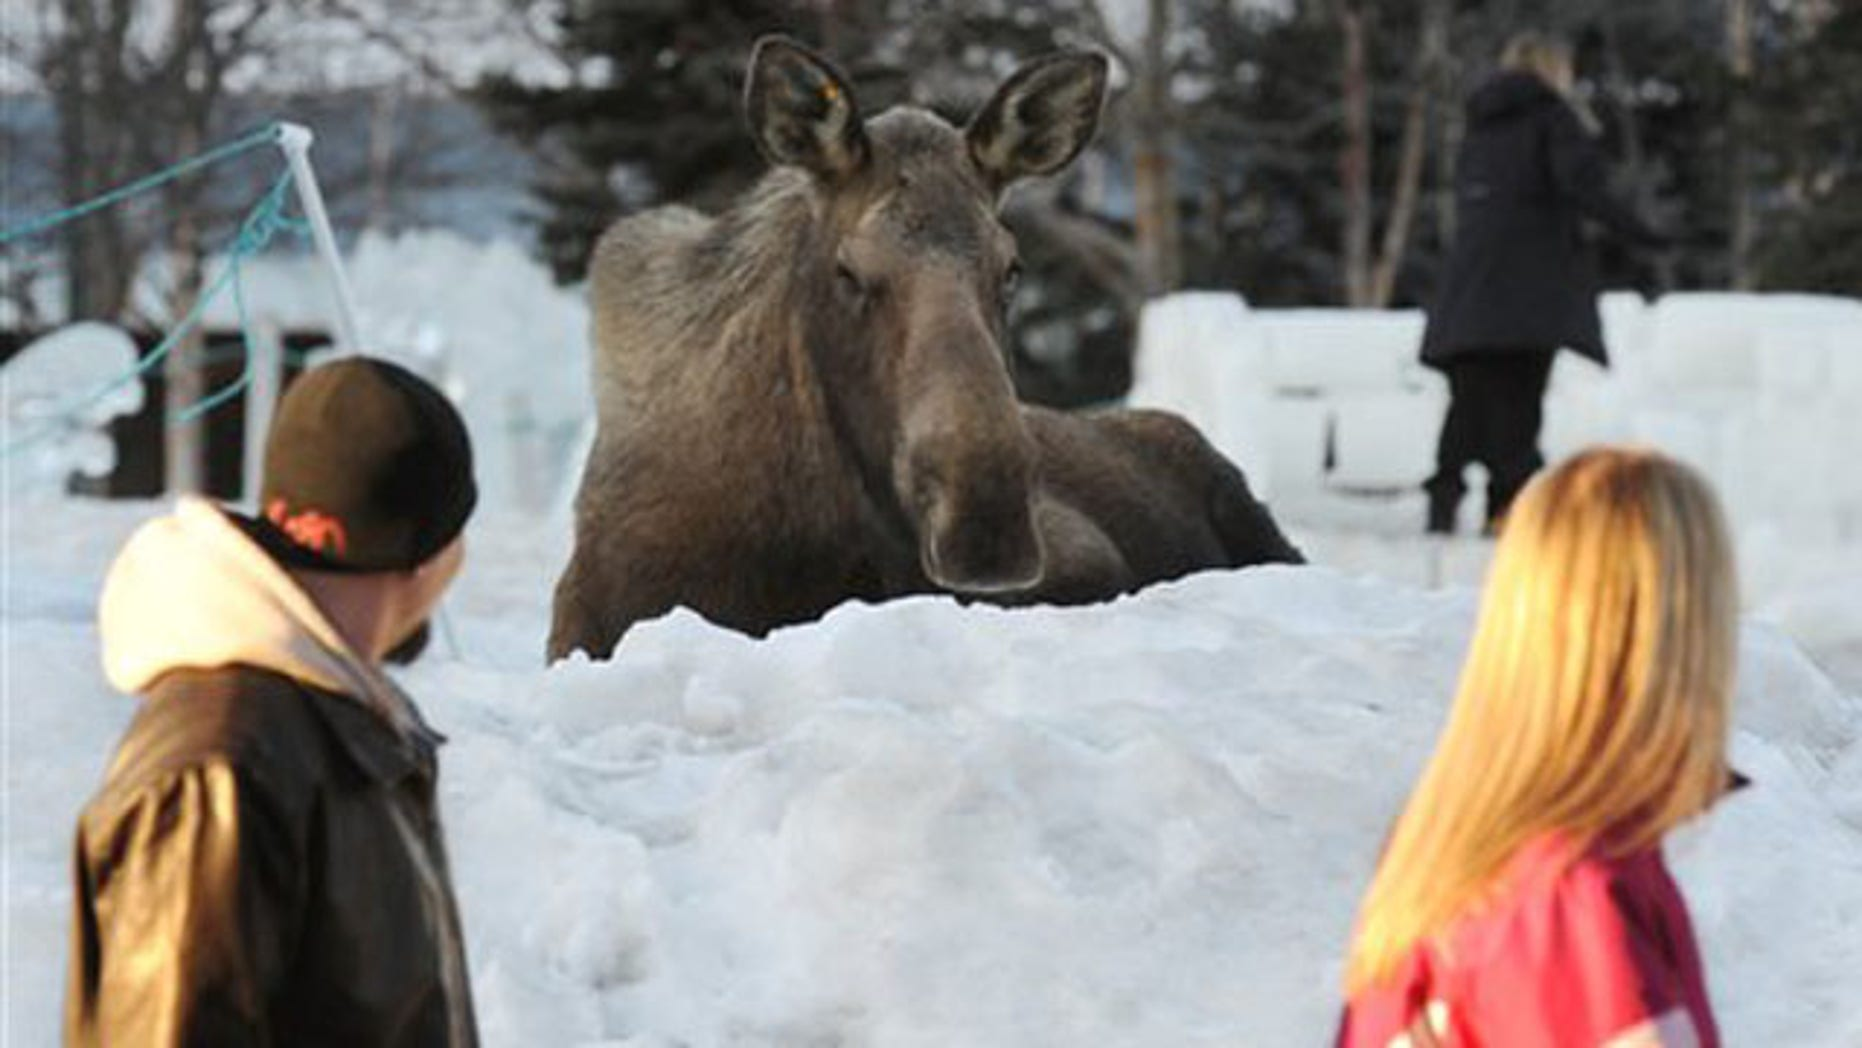 People walk past a moose resting in Town Sqaure Park after it reportedly attacked a woman who approached the moose to pet it on Monday, March 7, 2011 in Anchorage, Alaska.    Police are warning people to leave the animals alone after a moose kicked a woman in an Anchorage park after she tried to pet it. Police spokeswoman Anita Shell says people need to give the creatures their space.